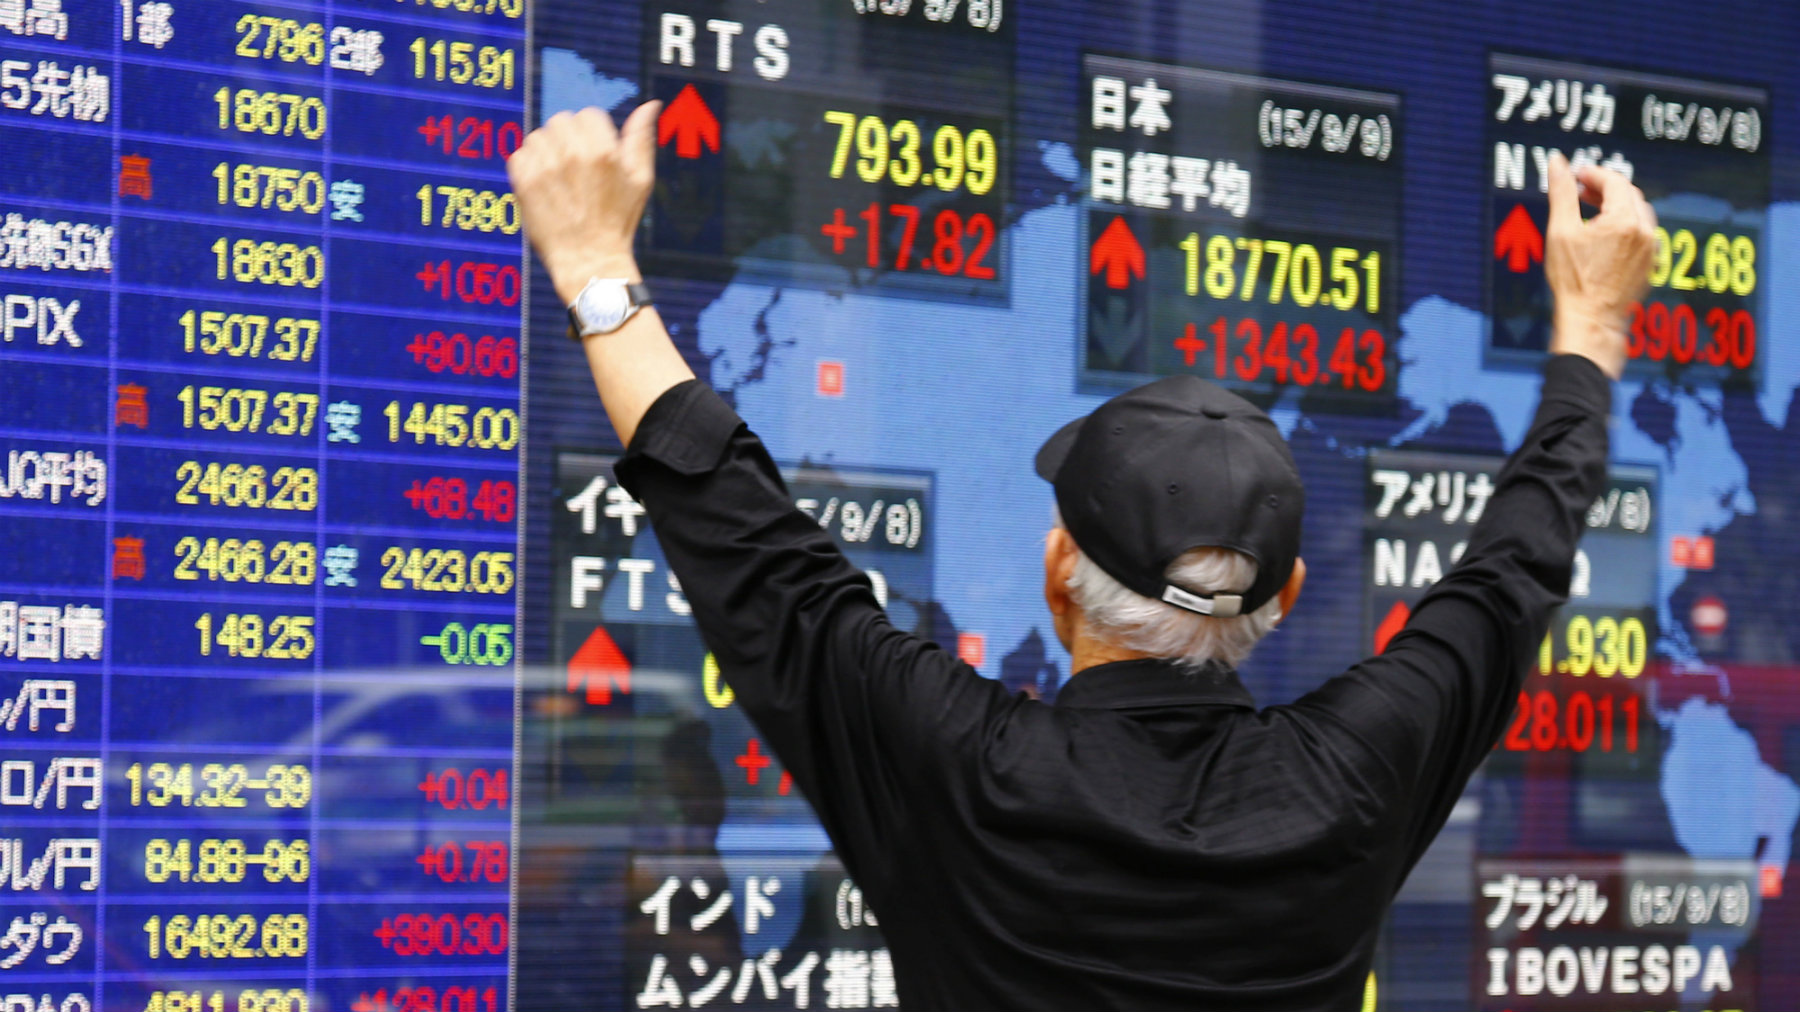 A man look at an electronic stock indicator of a securities firm in Tokyo, Wednesday, Sept. 9, 2015. Japan's Nikkei 225 stock index has surged 7.7 percent amid strong advances by other Asian markets. The Nikkei 225 index closed Wednesday up 1,343.43 points, or 7.7 percent, at 18,770.51. (AP Photo/Shizuo Kambayashi)